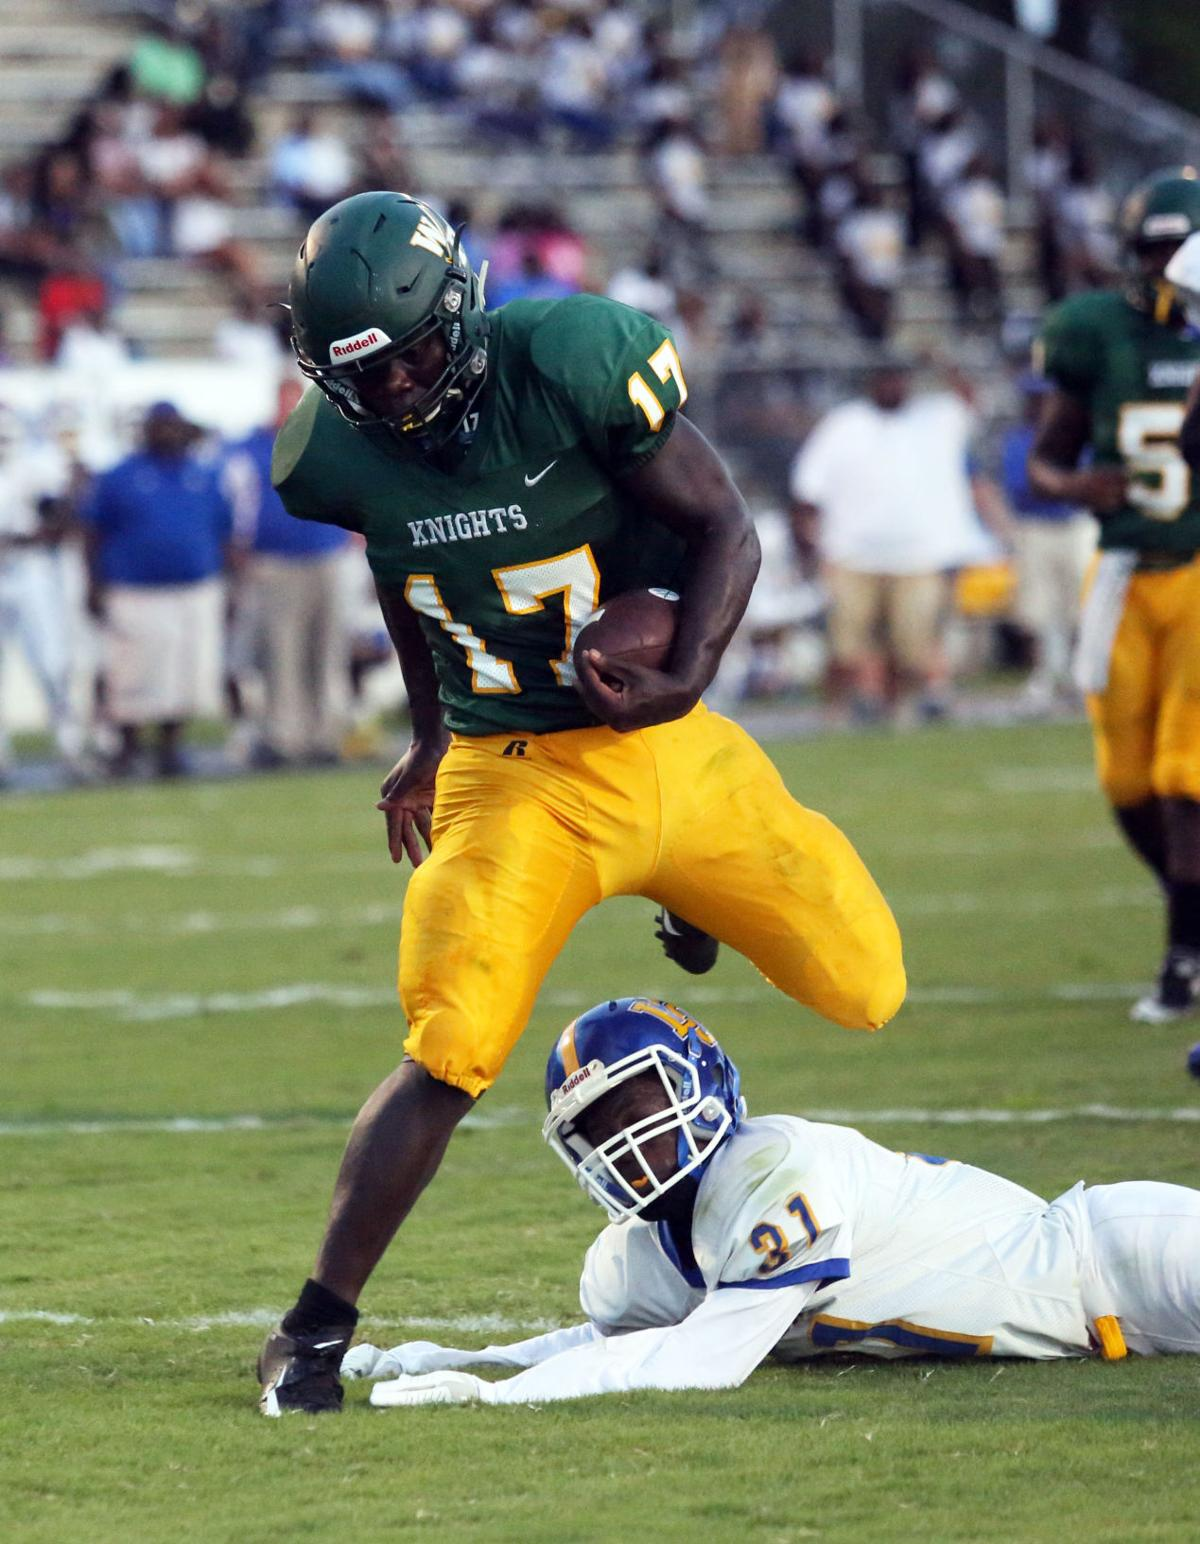 West Florence's Ailym Ford one of five finalists for South ...